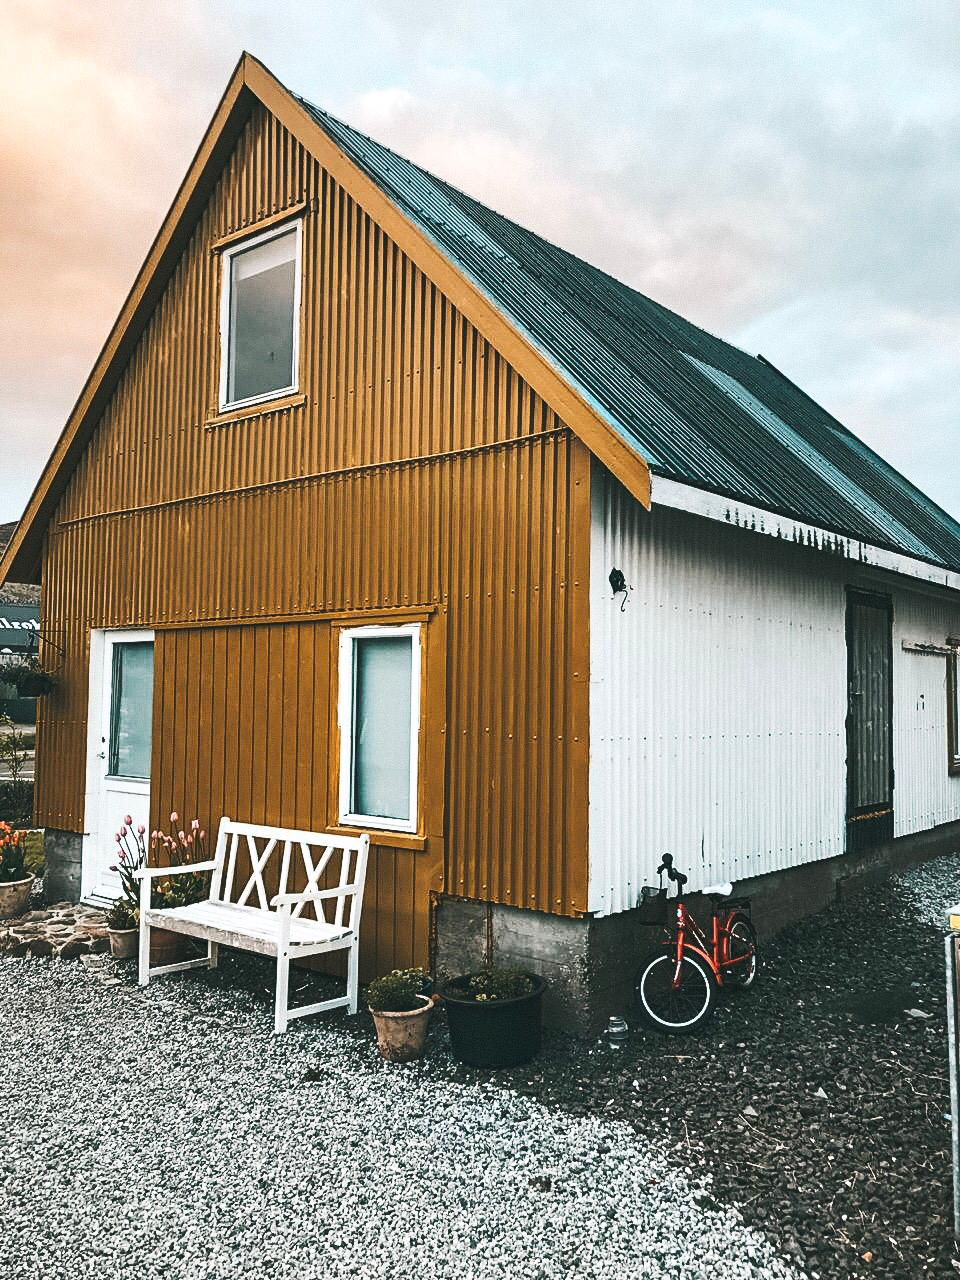 Nossa casa do Airbnb em Faroe Islands (Foto: Trip To Follow)